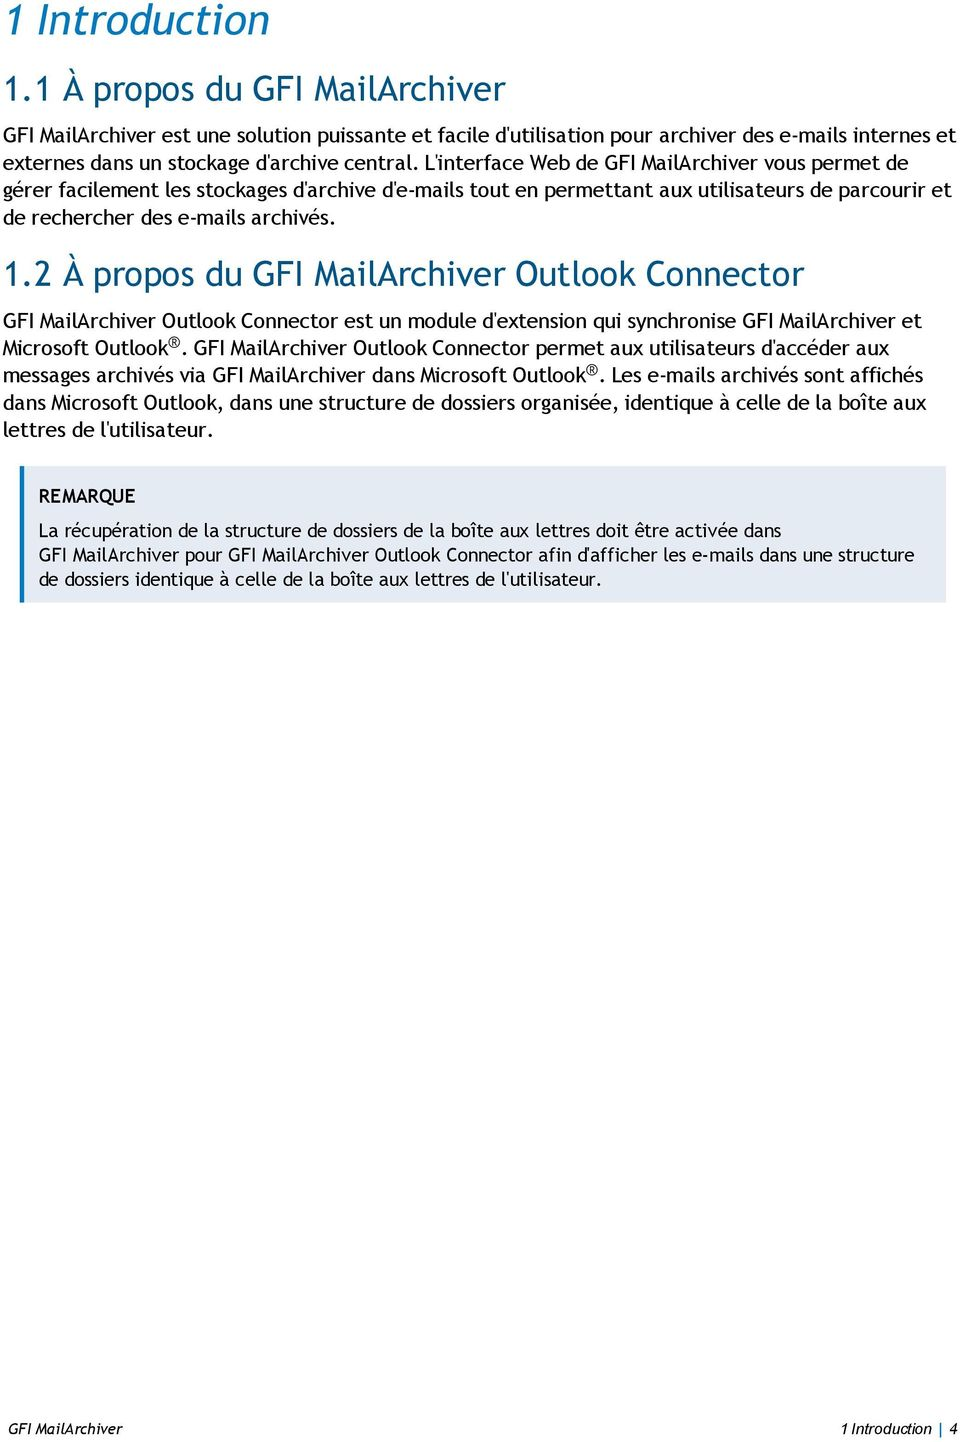 2 À propos du GFI MailArchiver Outlook Connector GFI MailArchiver Outlook Connector est un module d'extension qui synchronise GFI MailArchiver et Microsoft Outlook.